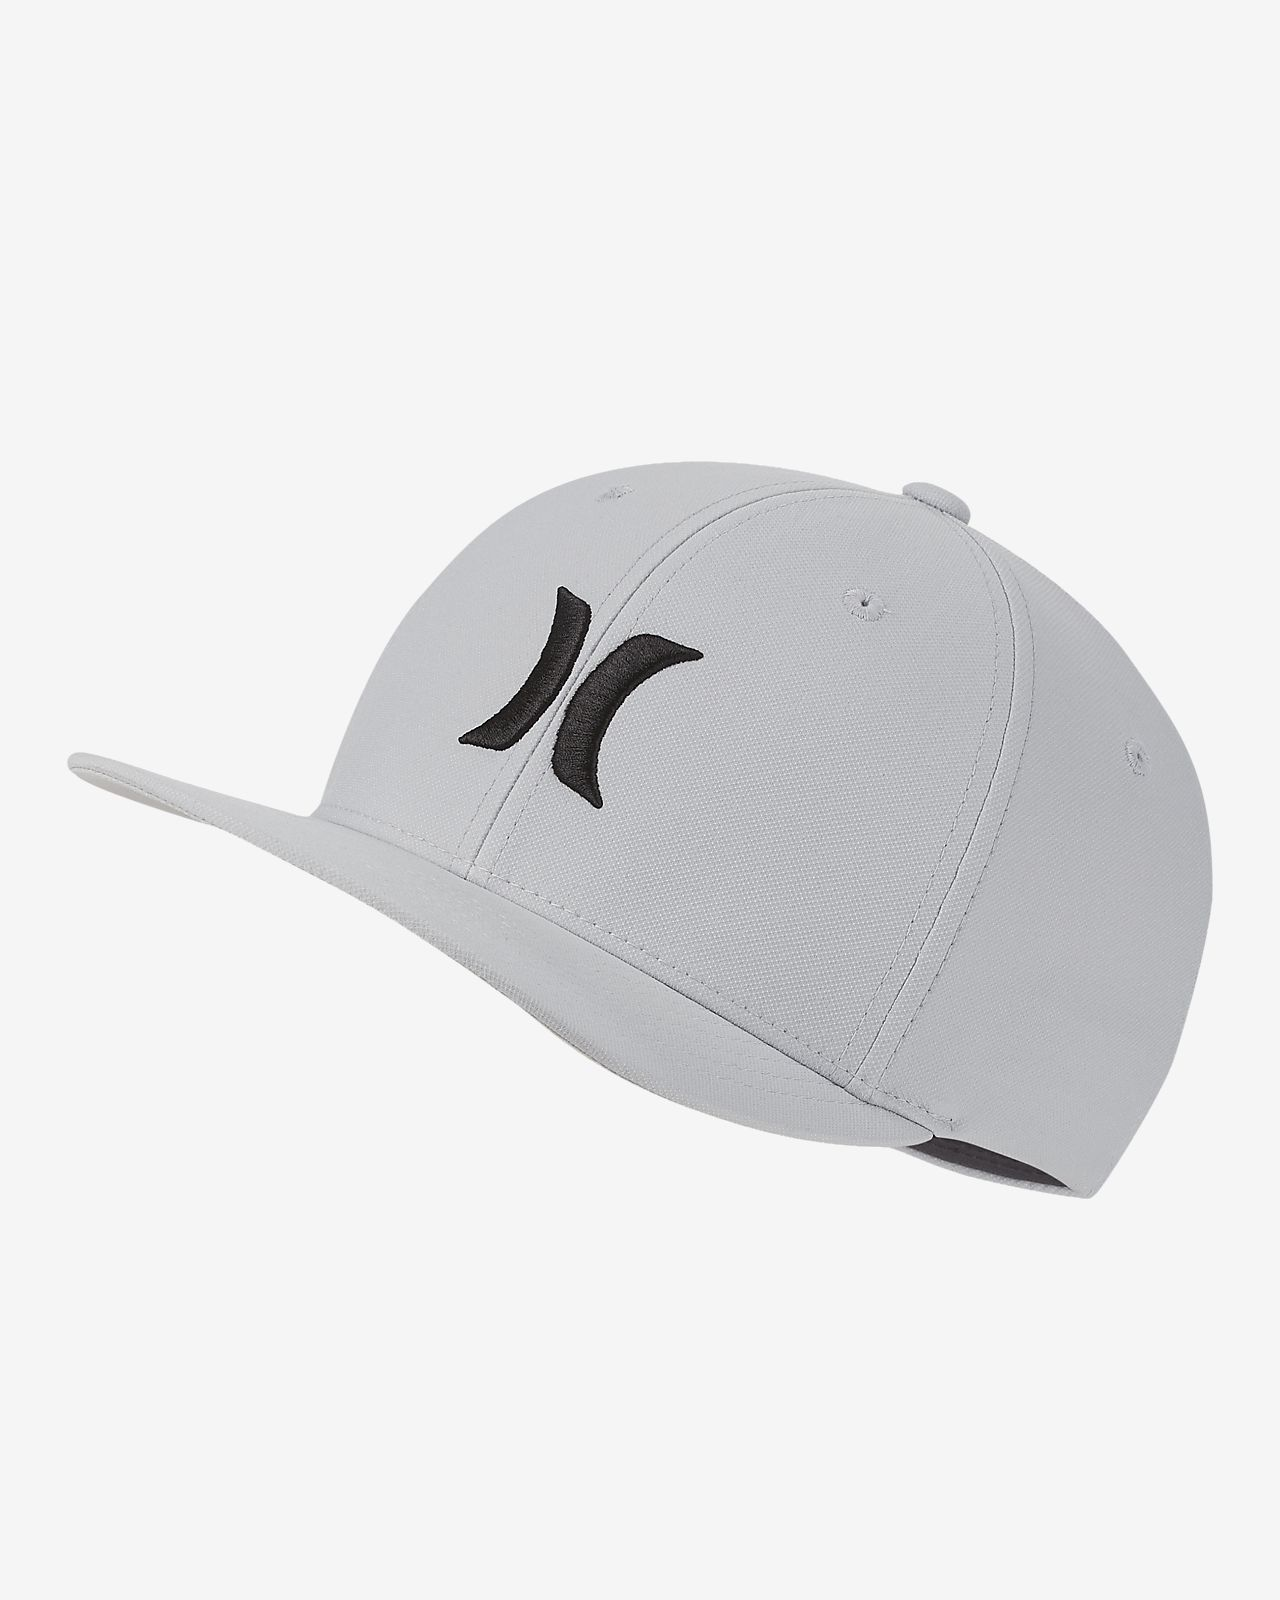 Hurley Dri-FIT One And Only passgenaue Cap (Unisex)